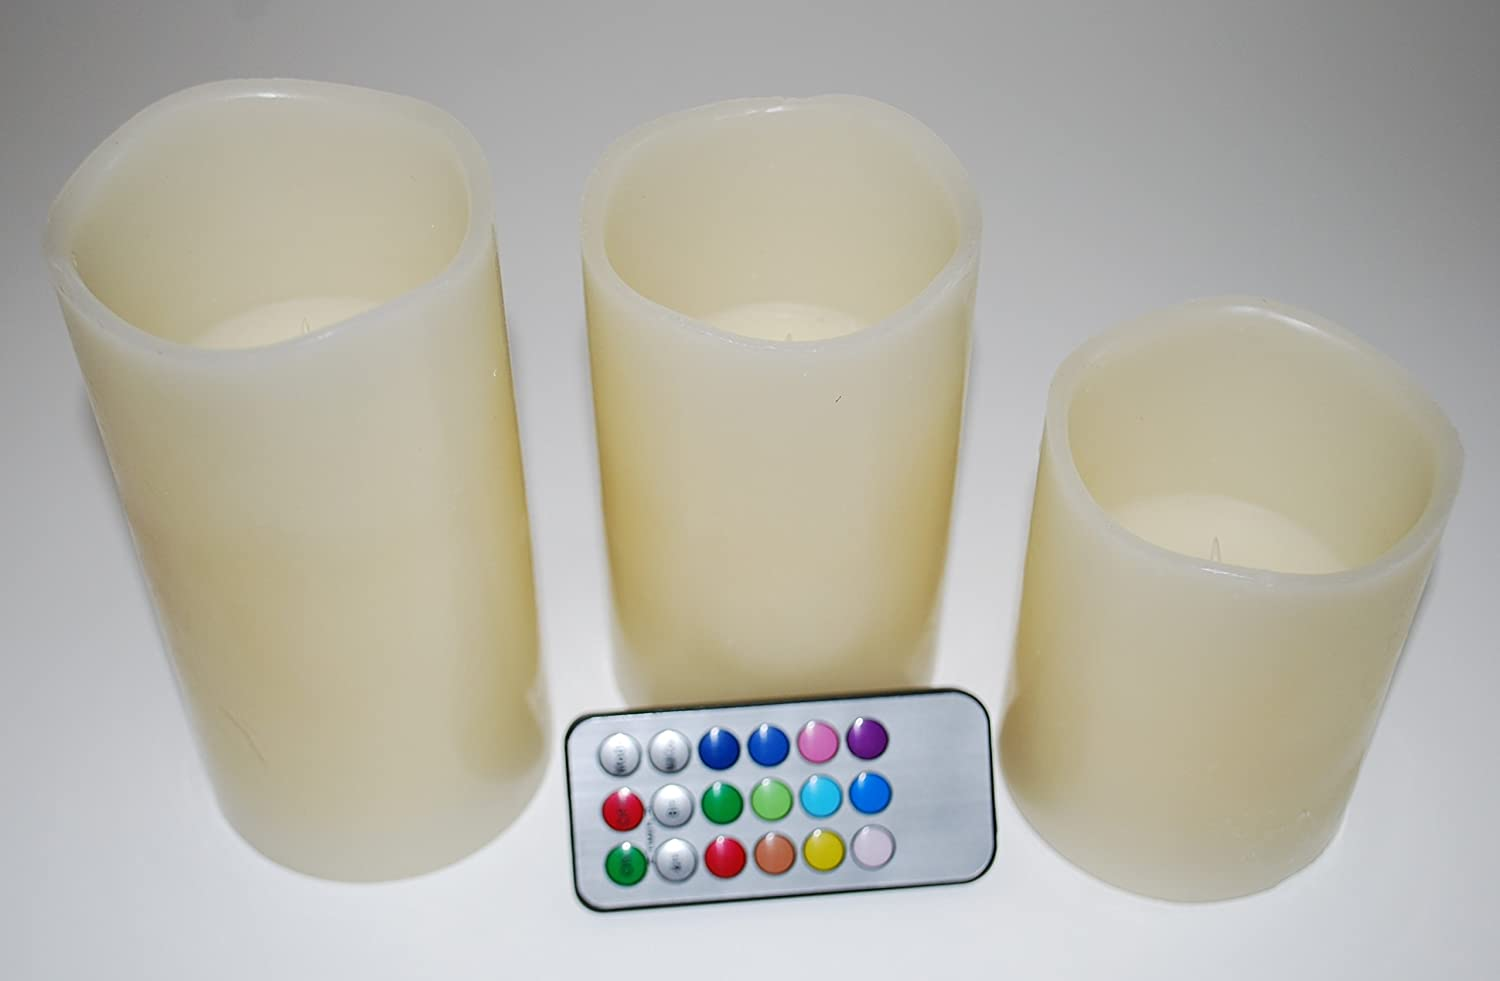 LED Flameless Candles – マルチカラー – リモート制御さ電池式(セットof 3 ) – Real Wax – No Messyクリーンアップ B01BXBL0P8